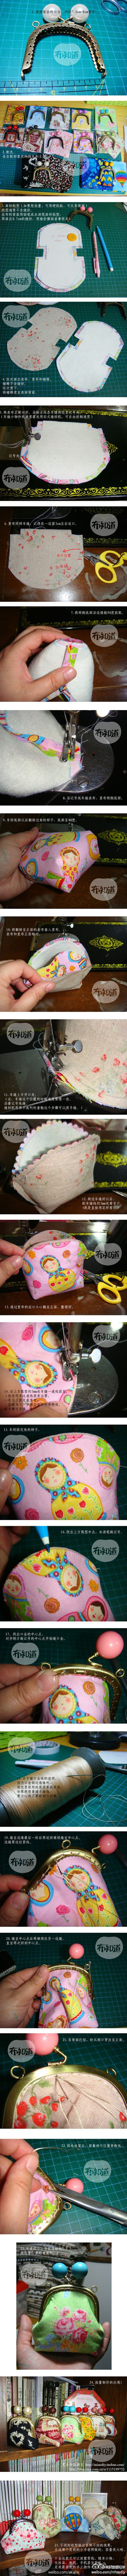 Make a petite coin purse. I always wondered how to do that!